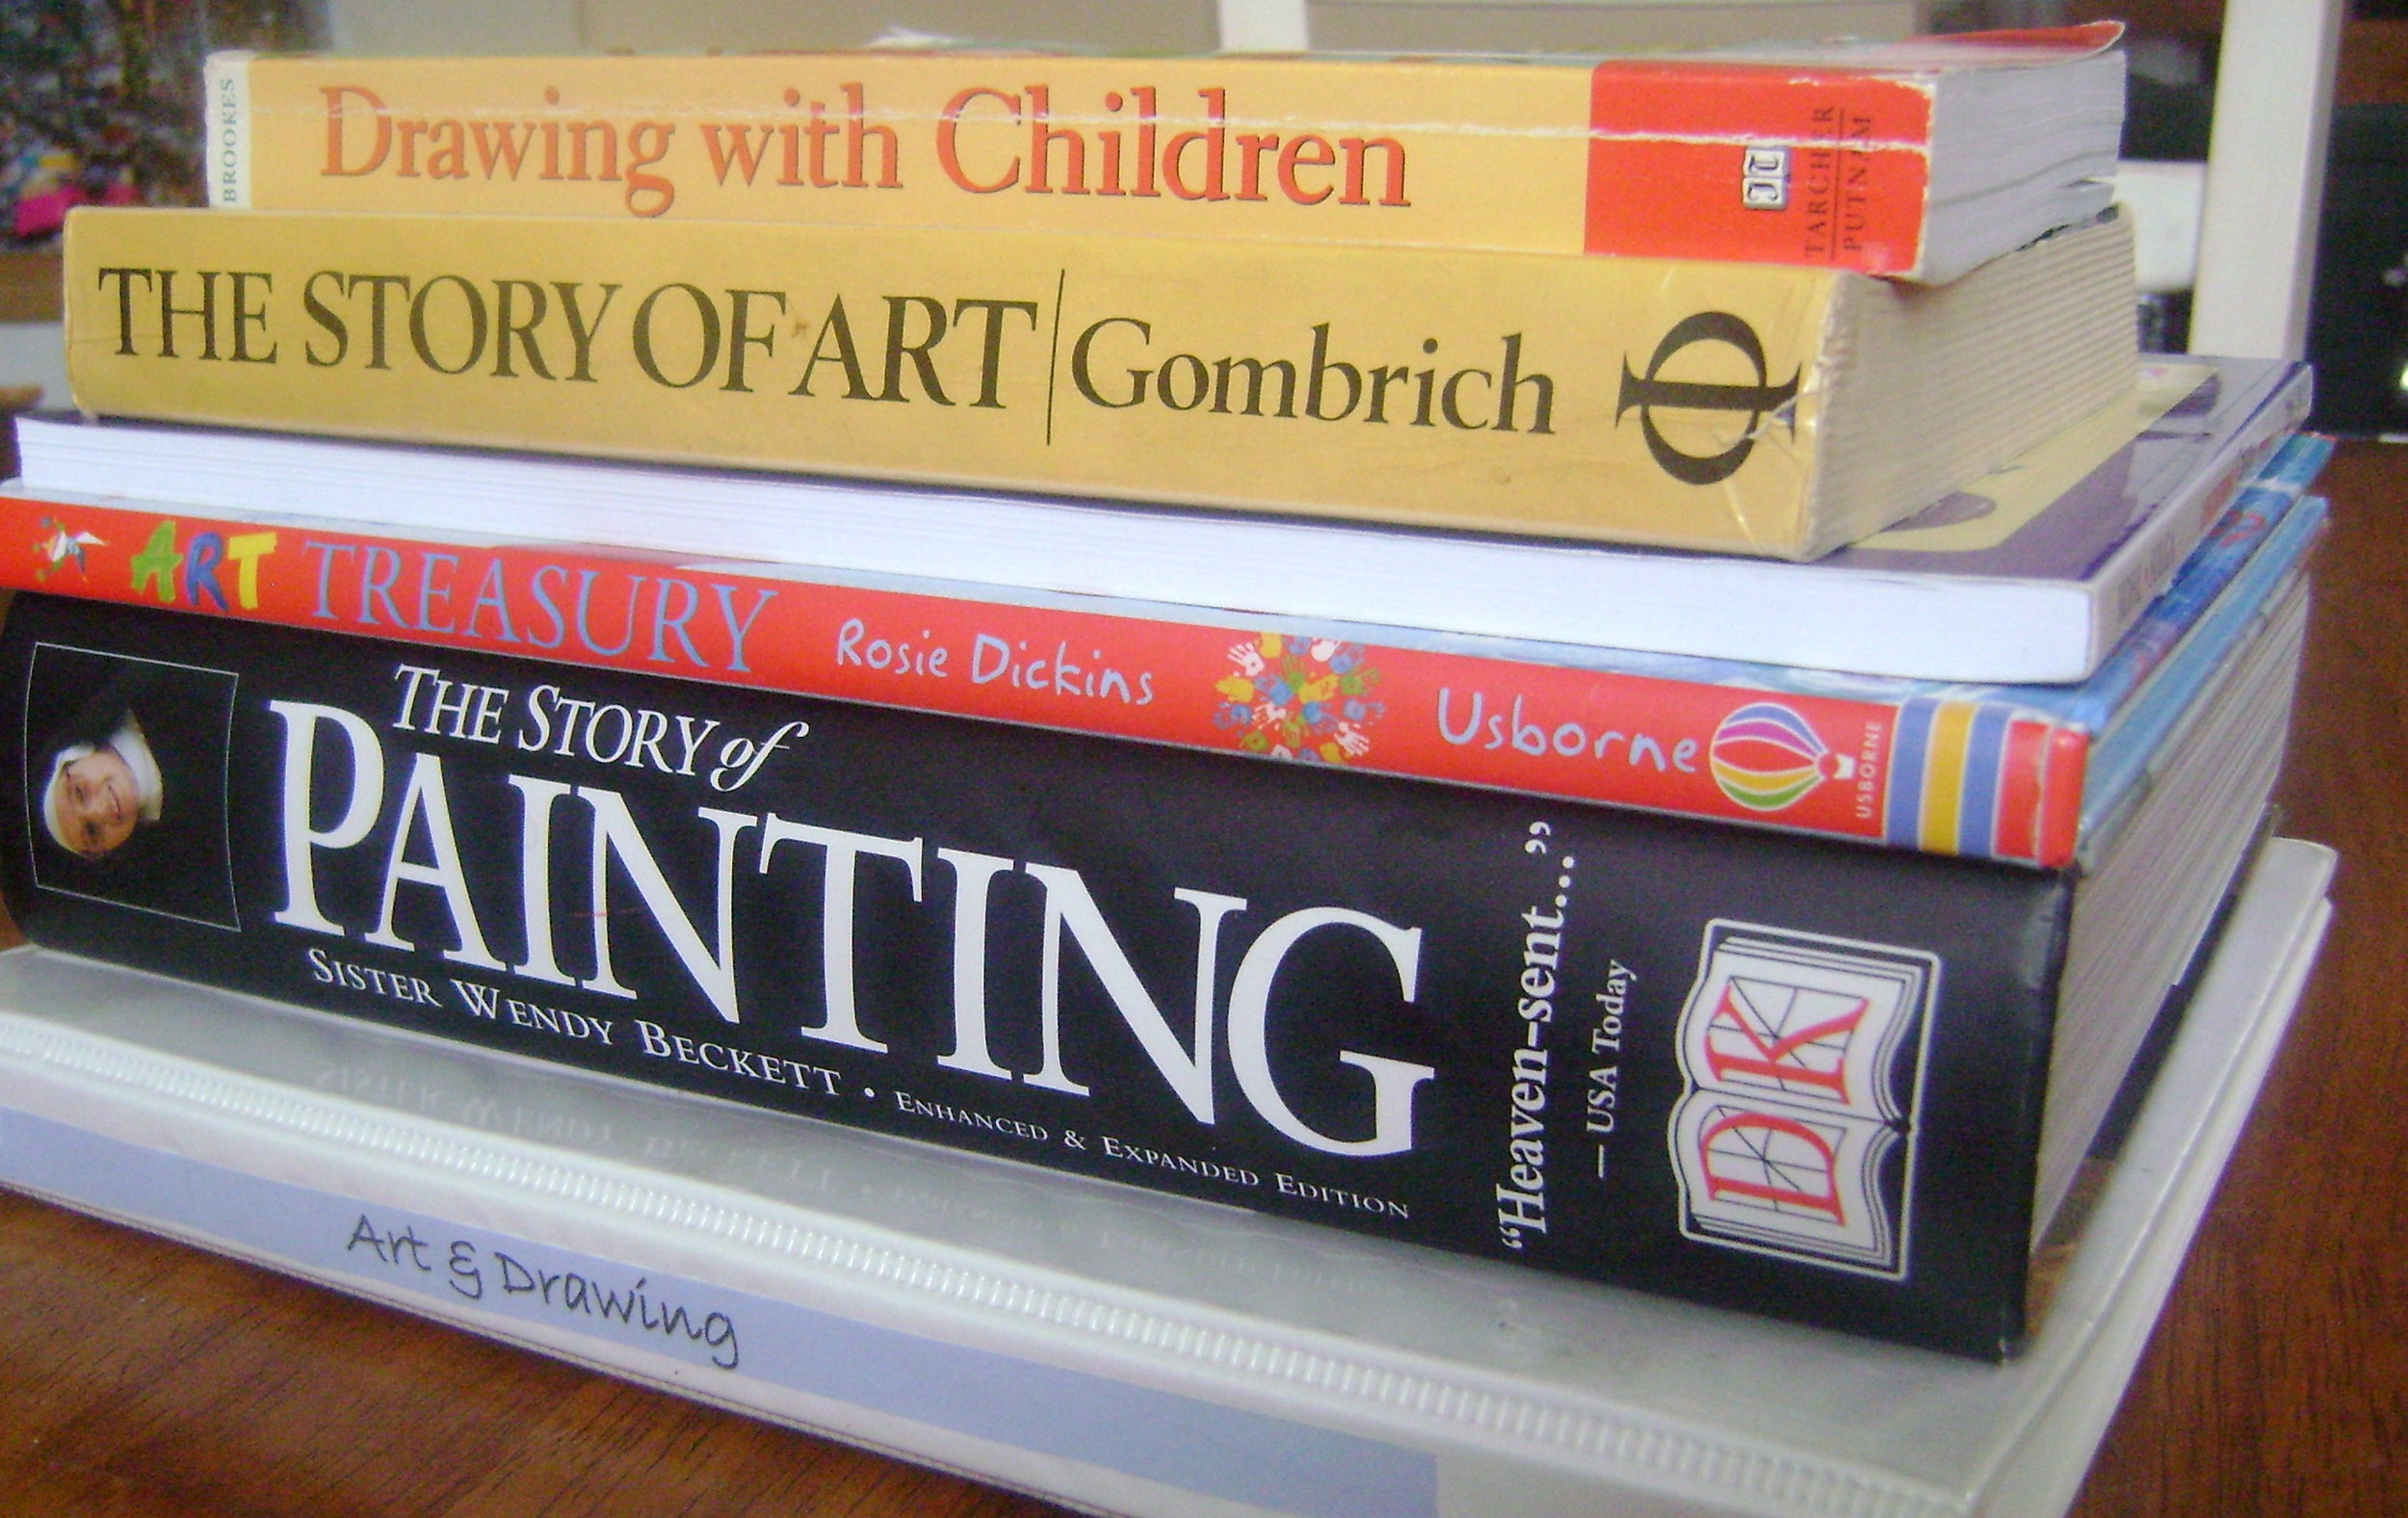 A collection of beautiful resources for studying artists and their artwork. Great list!